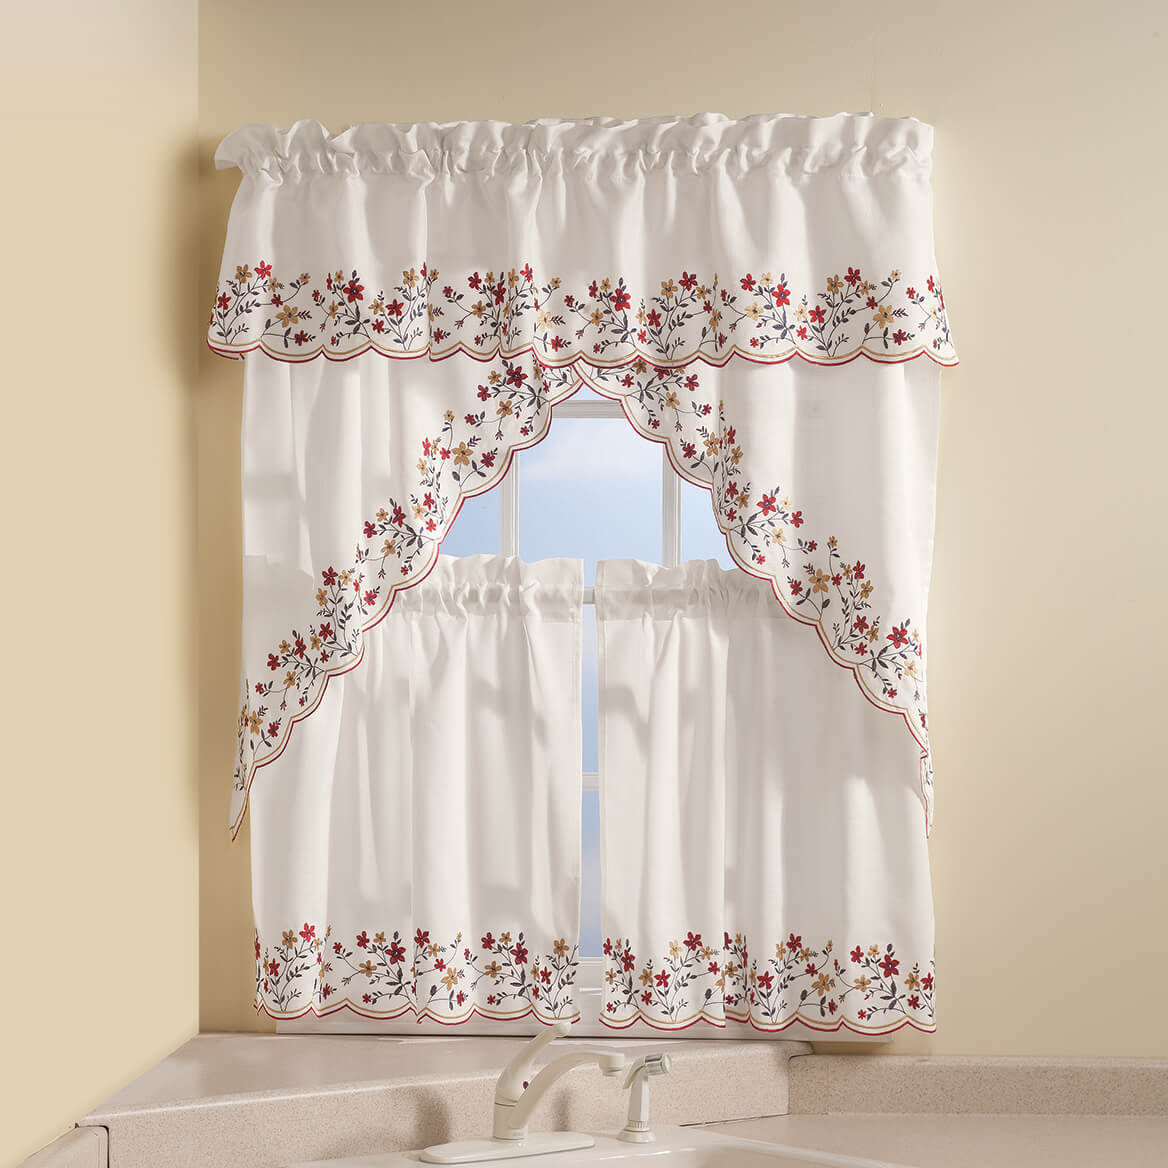 Floral Embroidered Insert Valance-363333